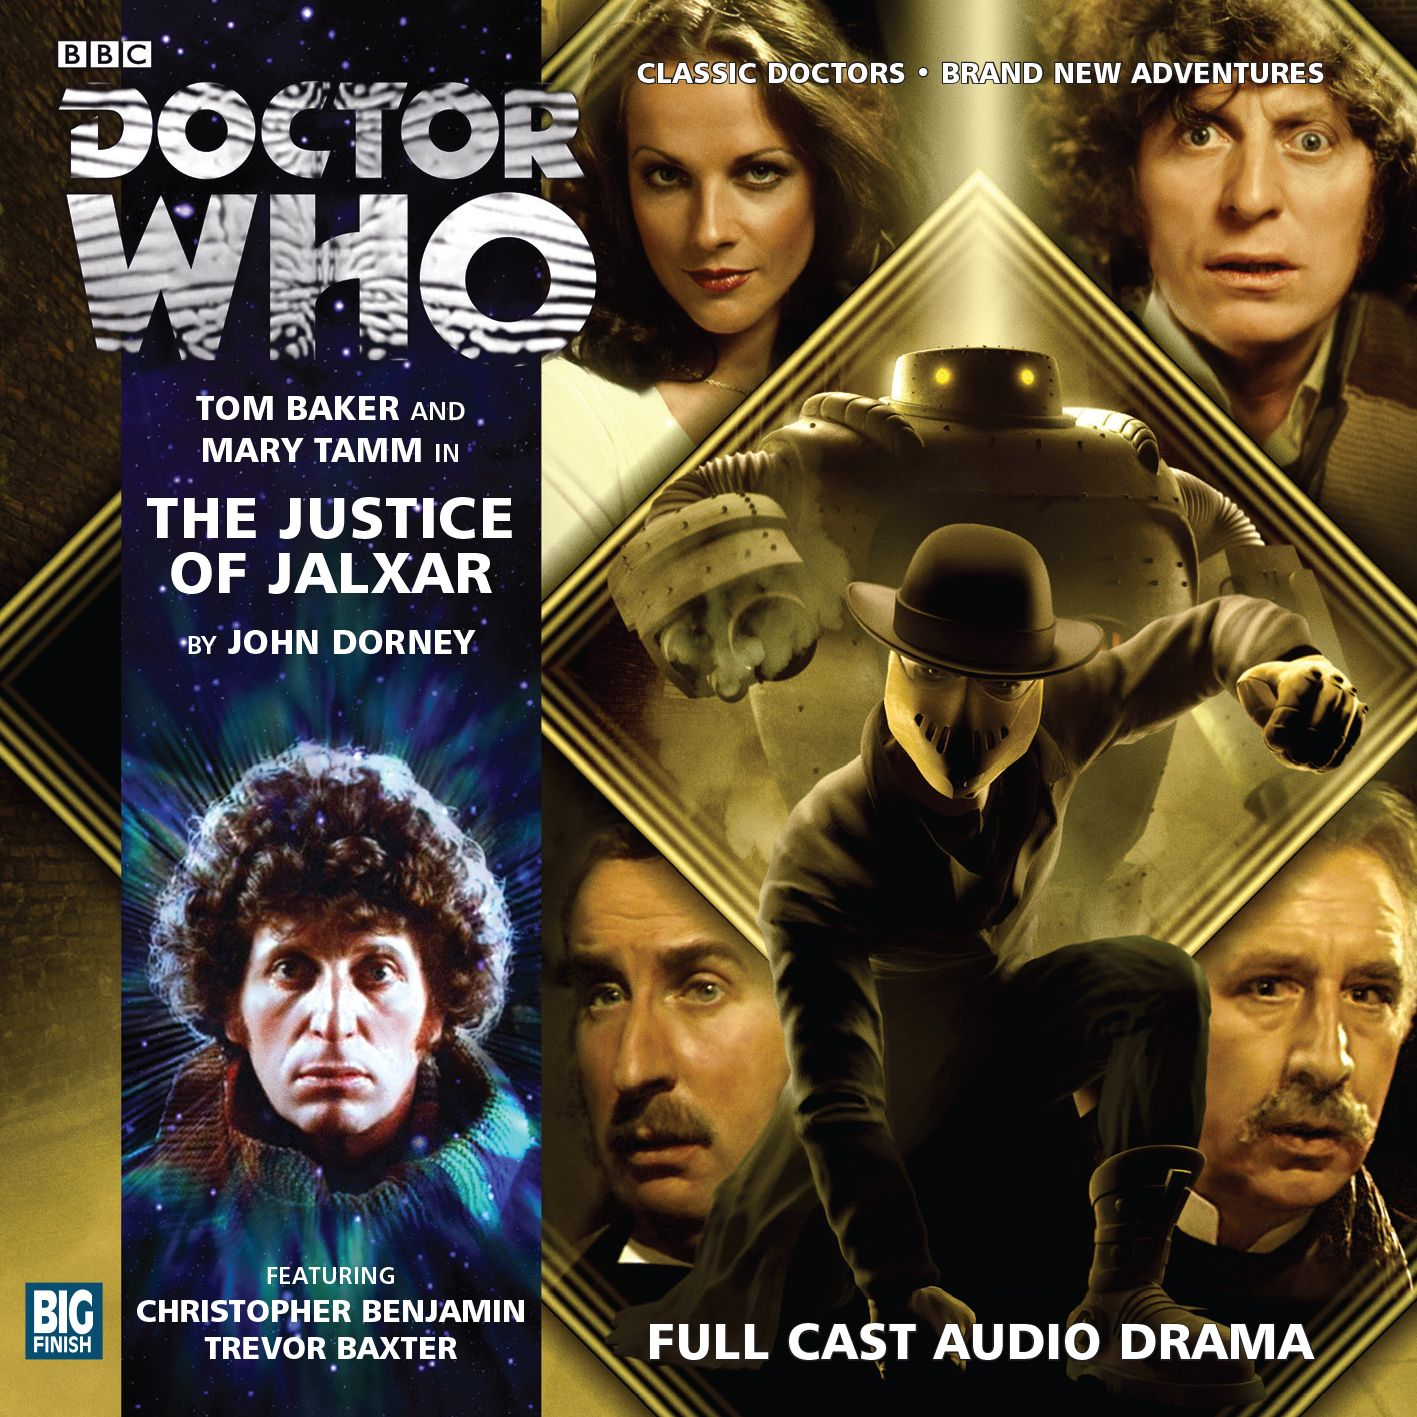 Fourth Doctor Adventures: The Justice of Jalxar (Credit: Big Finish)